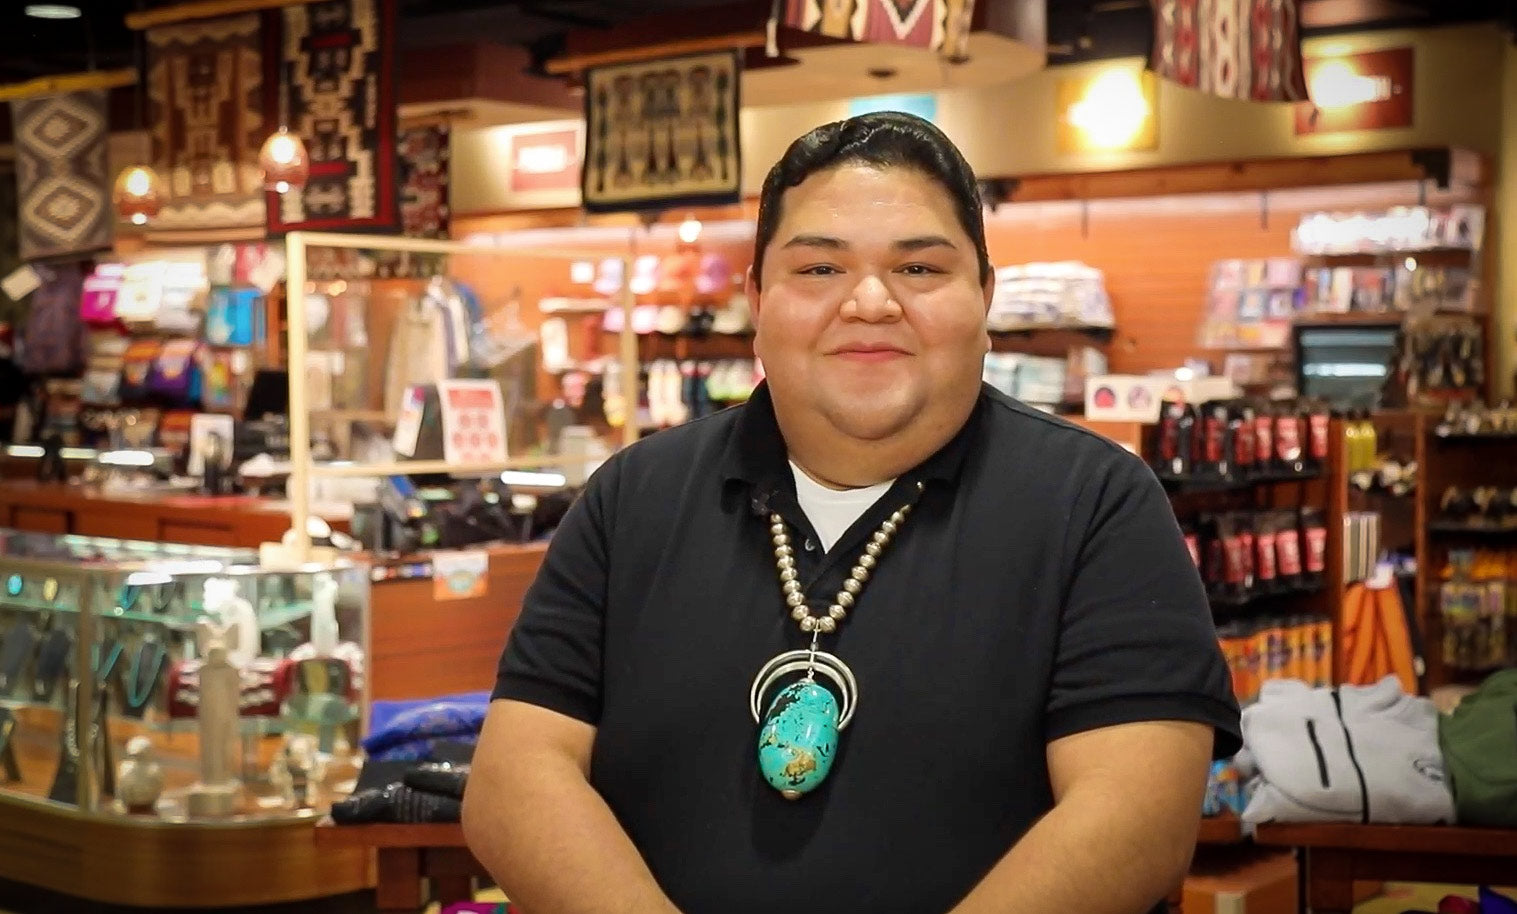 Shane Smith Native American Art and Jewelry Expert at the Indian Pueblo Store